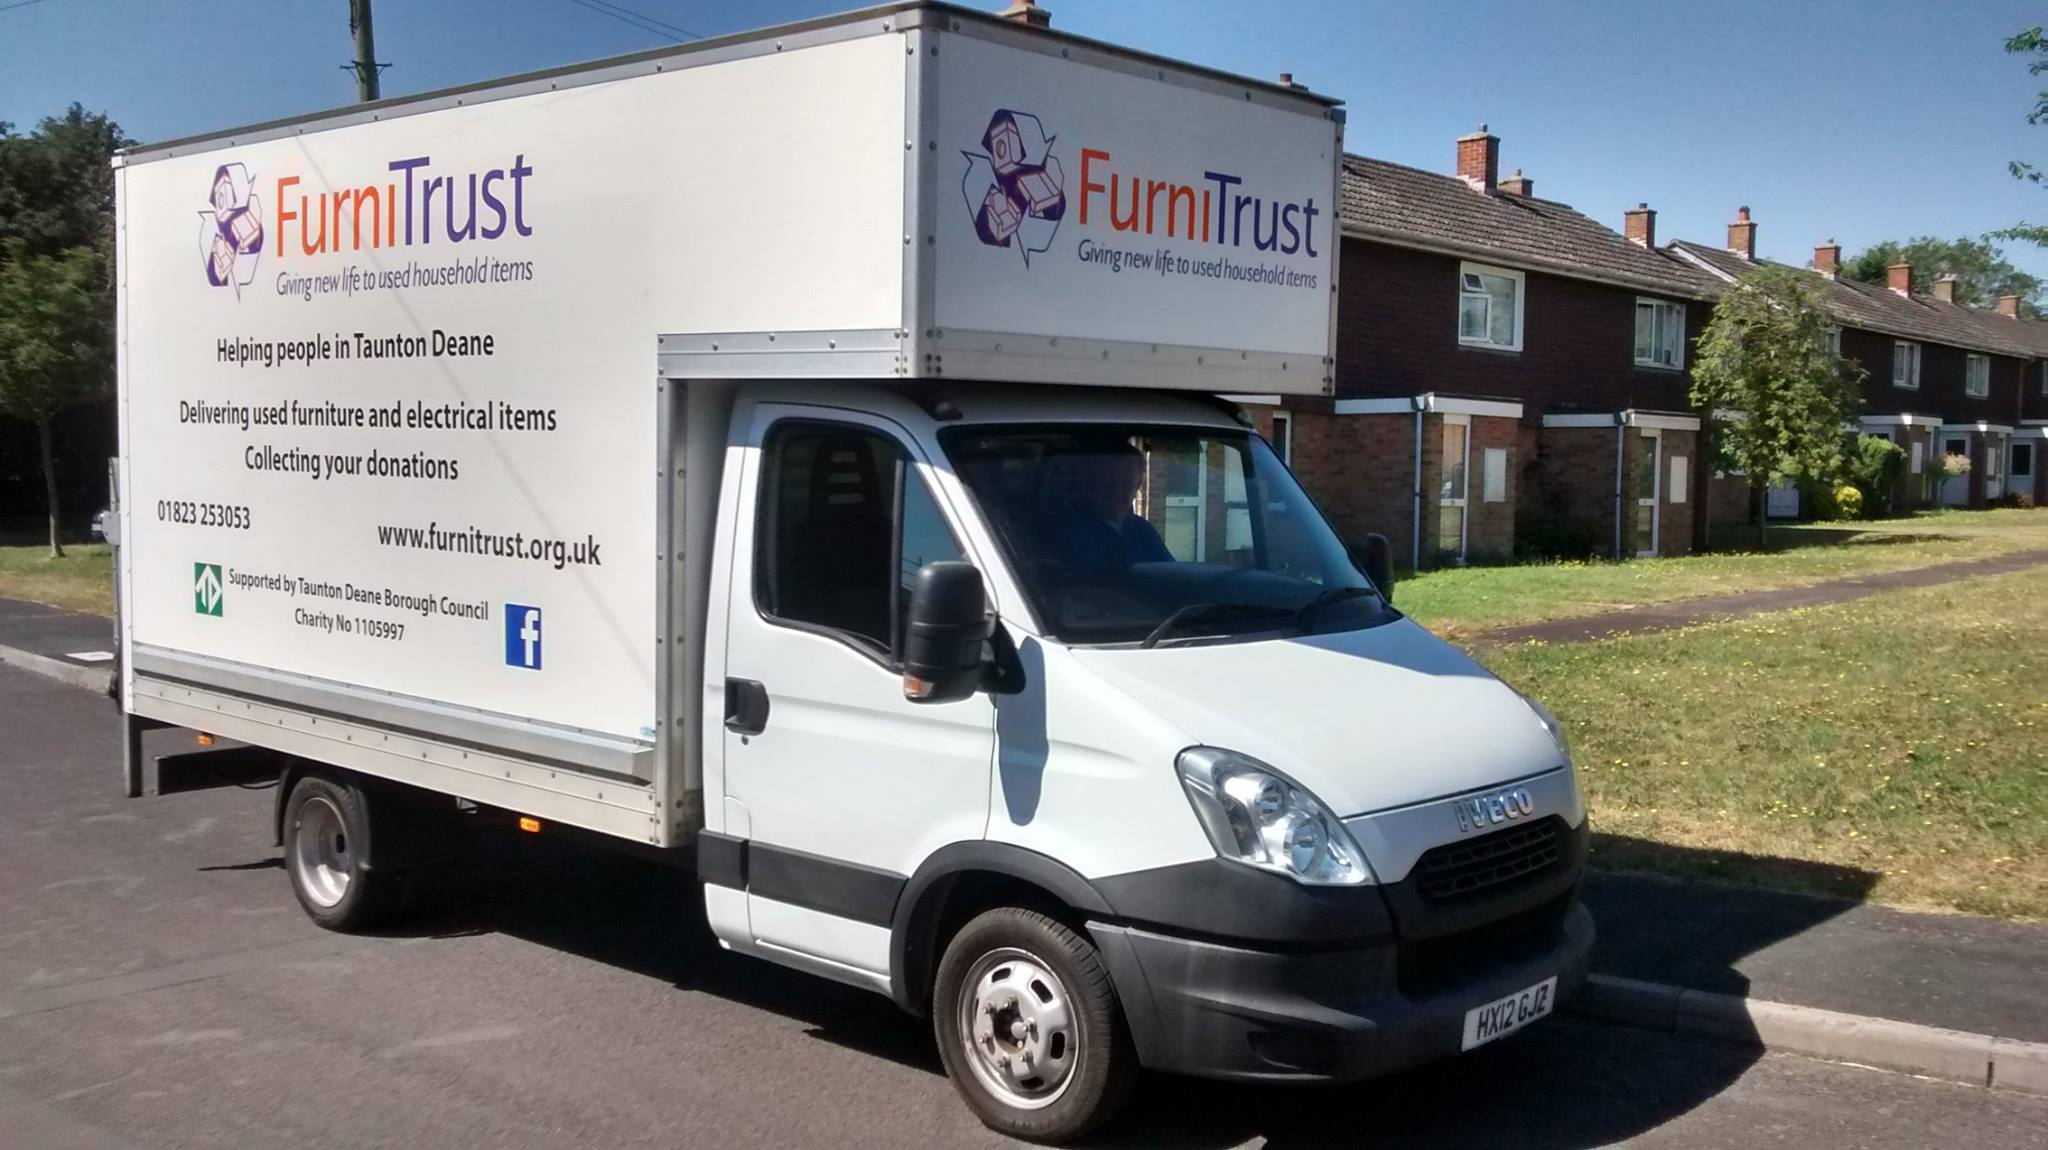 The FurniTrust van